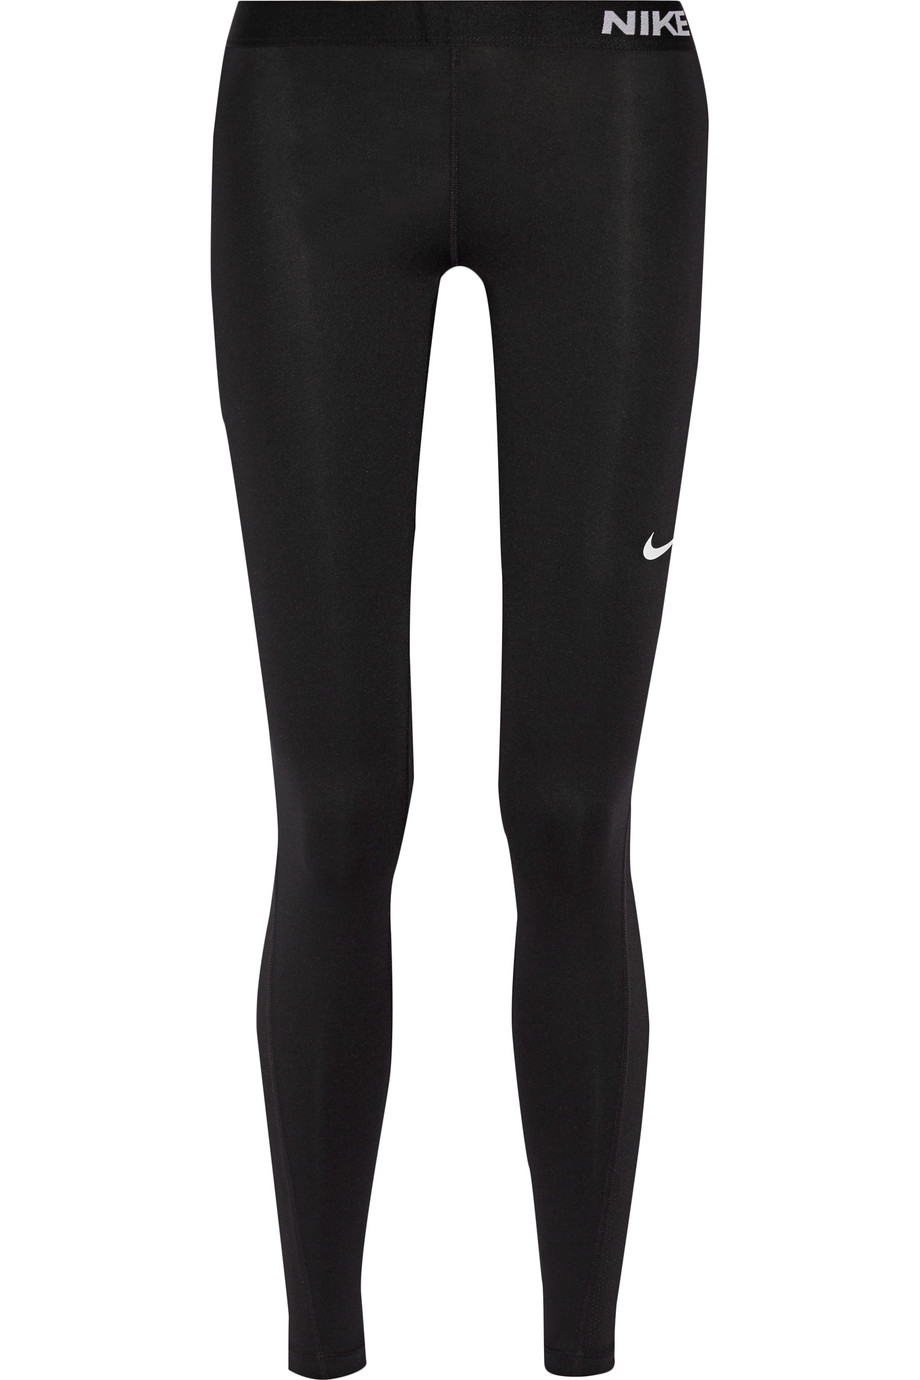 Nike Pro Cool Dri-FIT Stretch-Jersey Leggings, Black, Women's, Size: XL